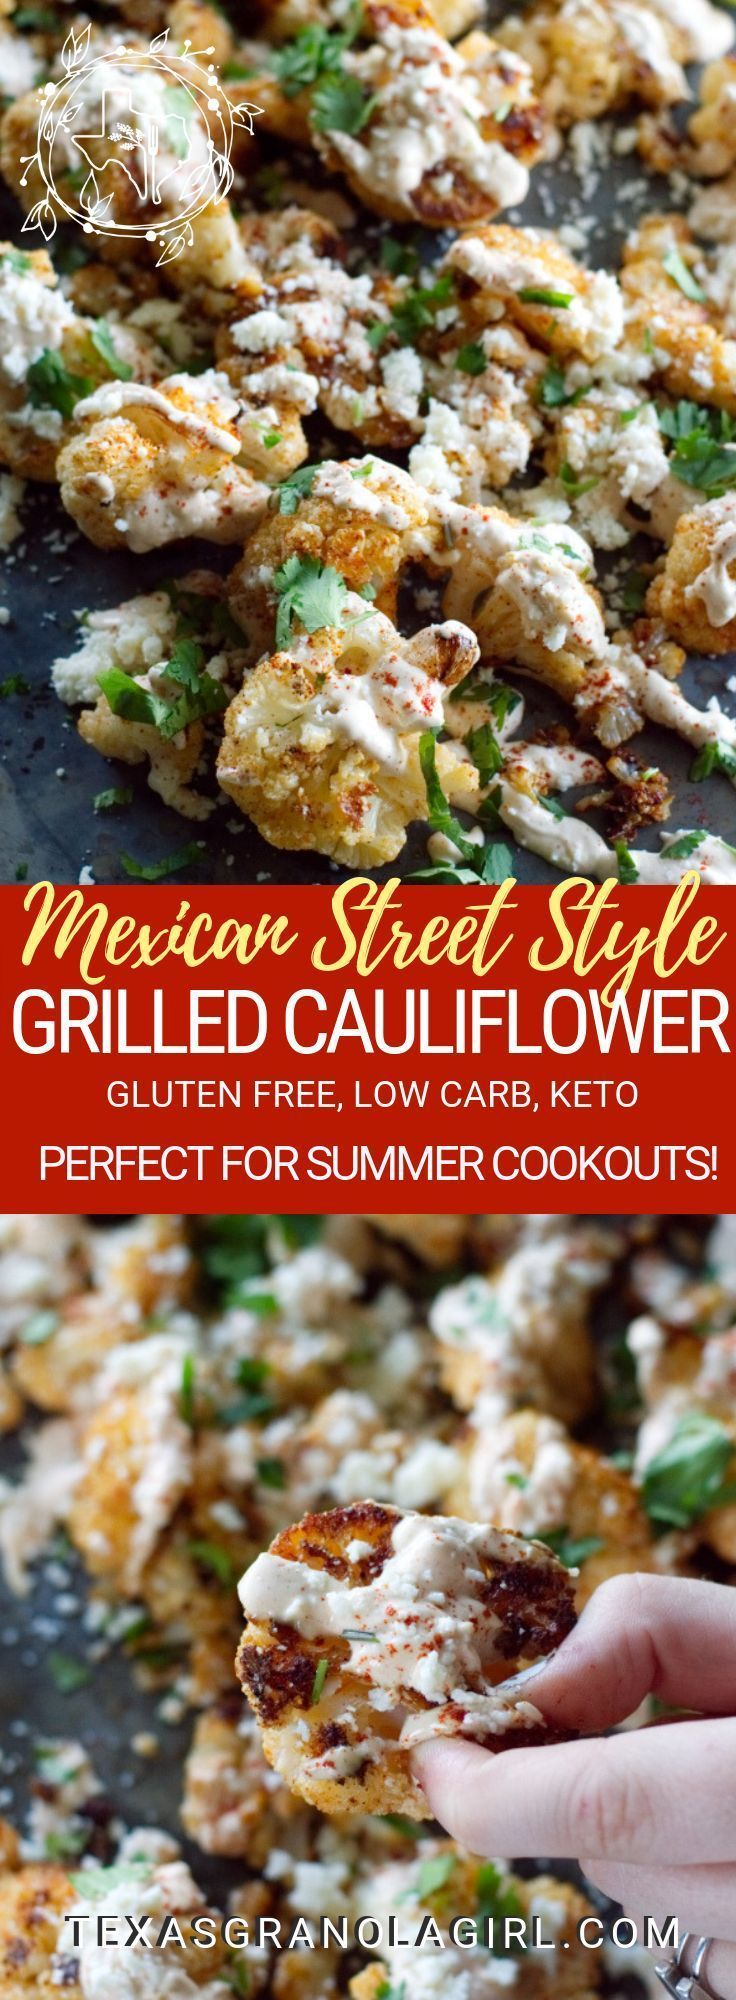 Mexican Street Style Grilled Cauliflower | Texas Granola Girl | Texas & Southern Keto Comfort Food Recipes